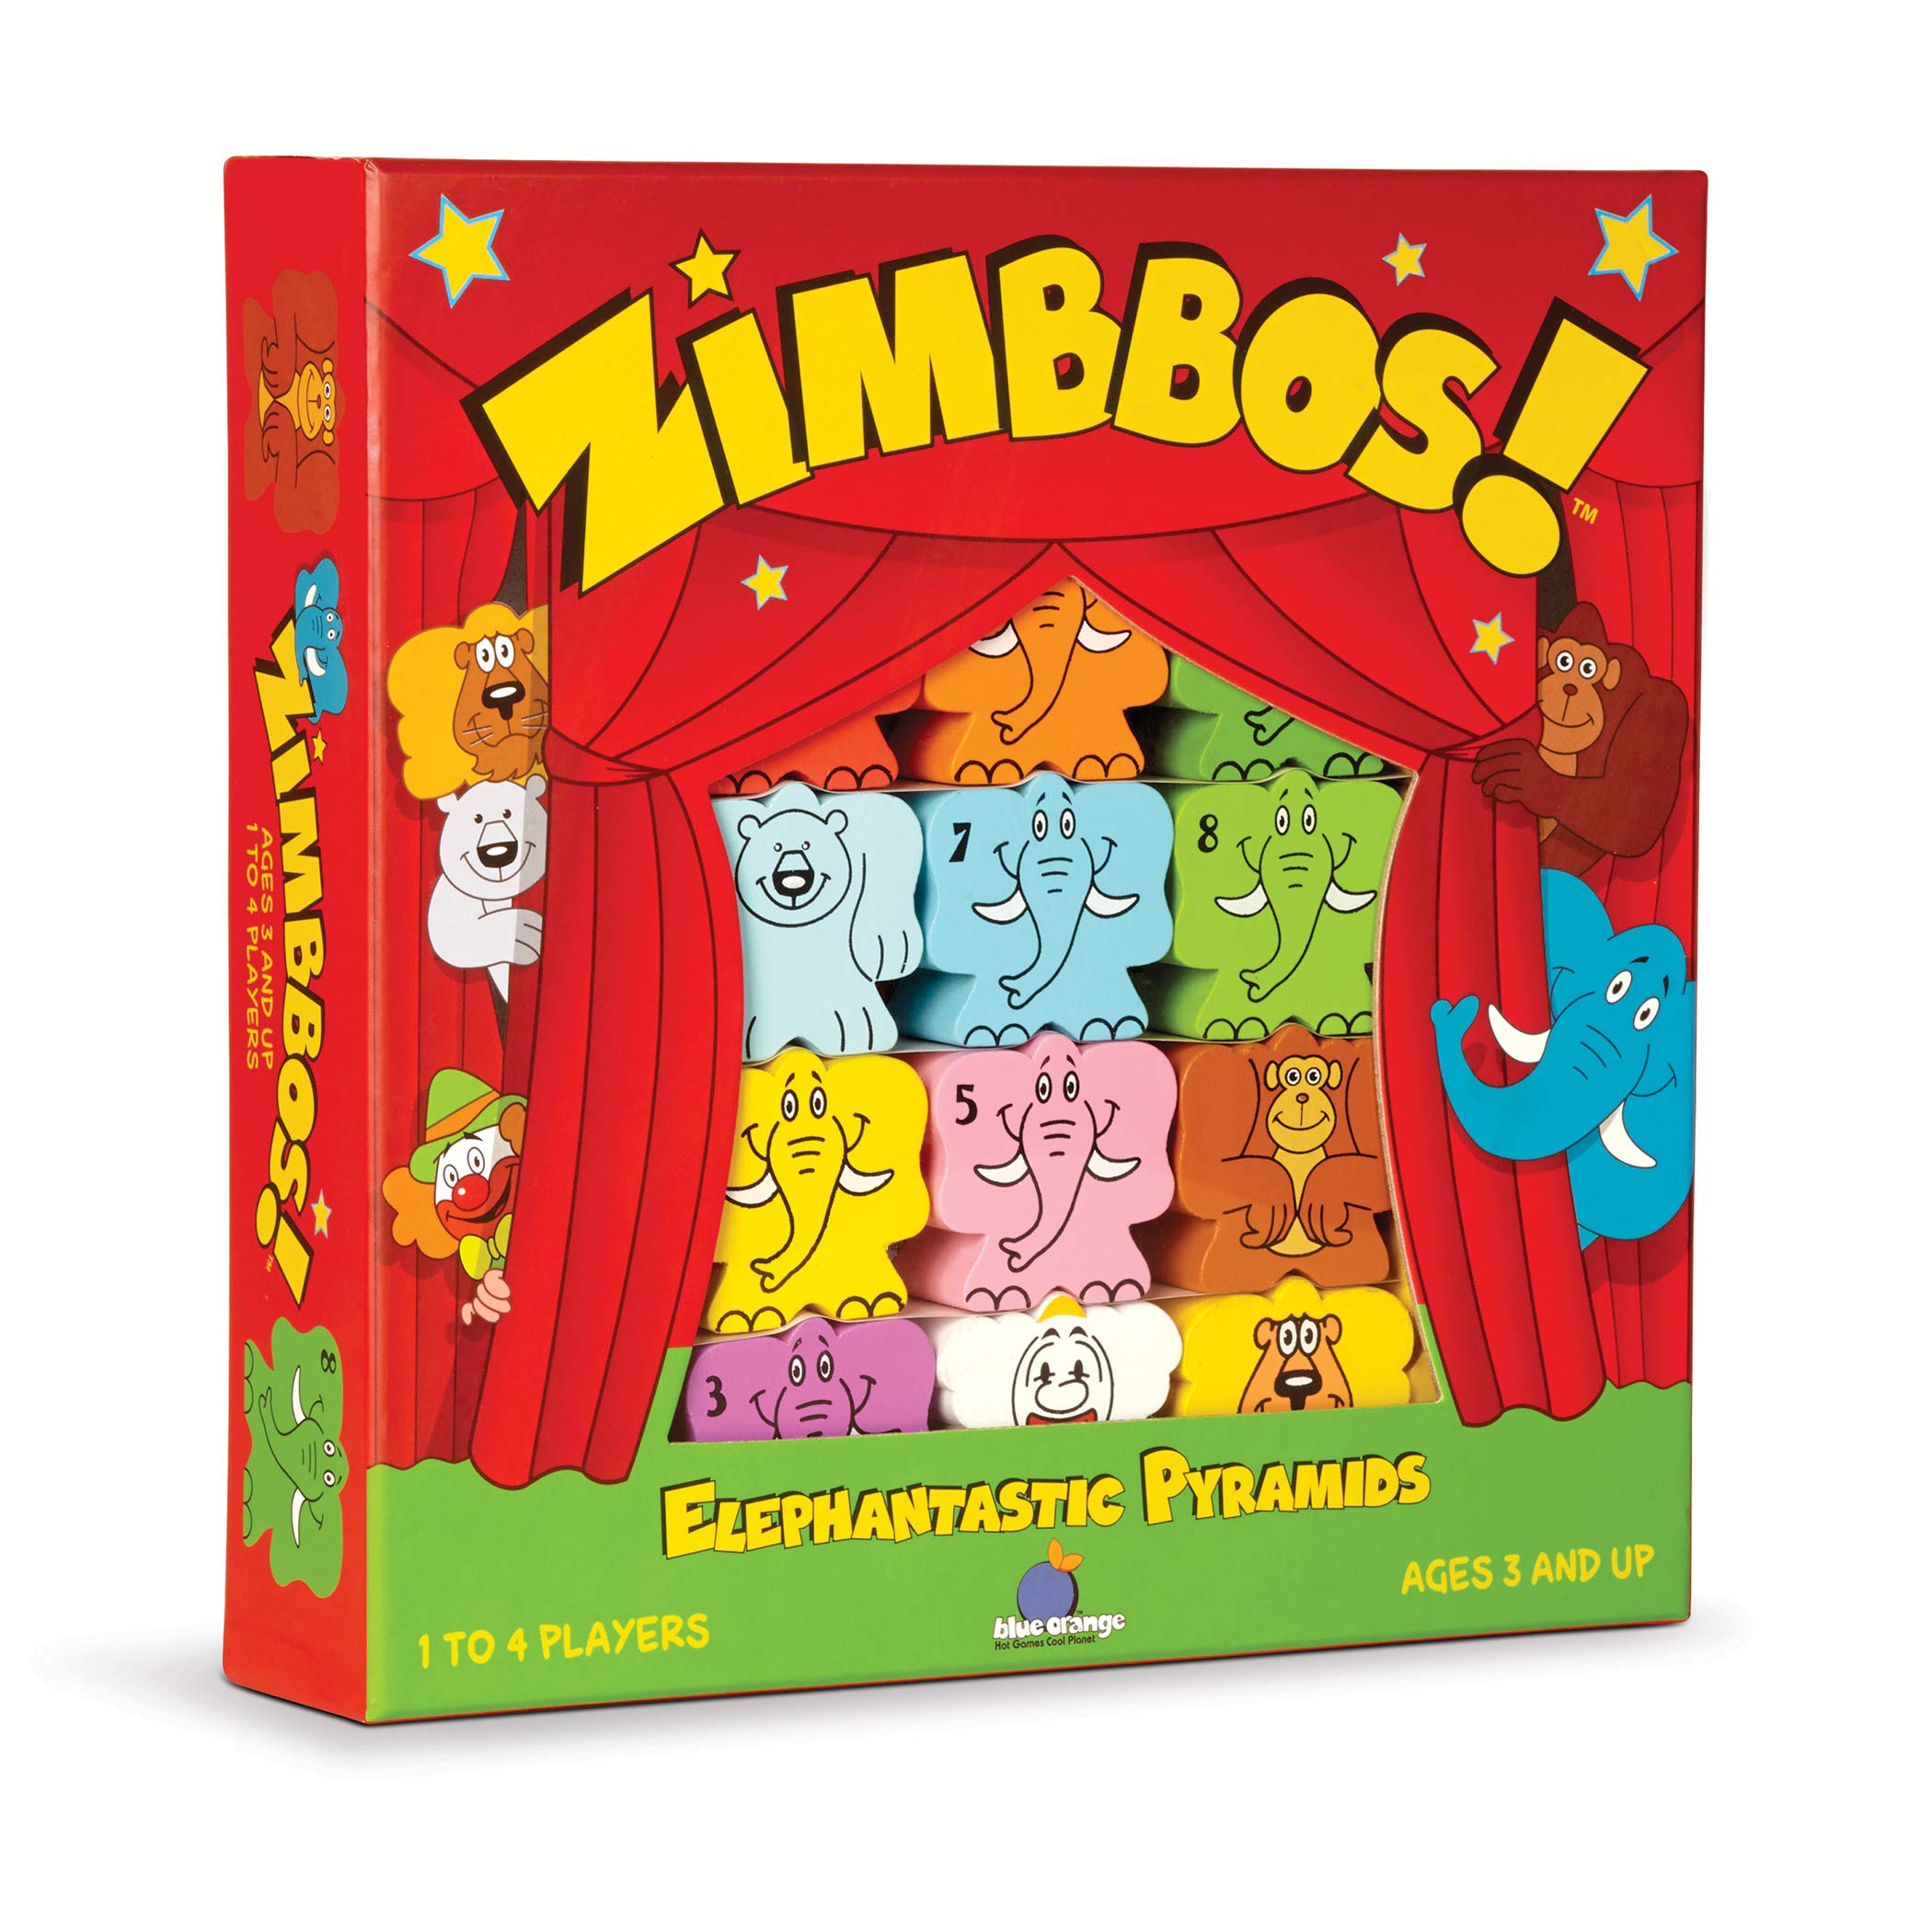 Zimbbos Cardboard Game: Amazon.es: Blue Orange Games: Libros en idiomas extranjeros